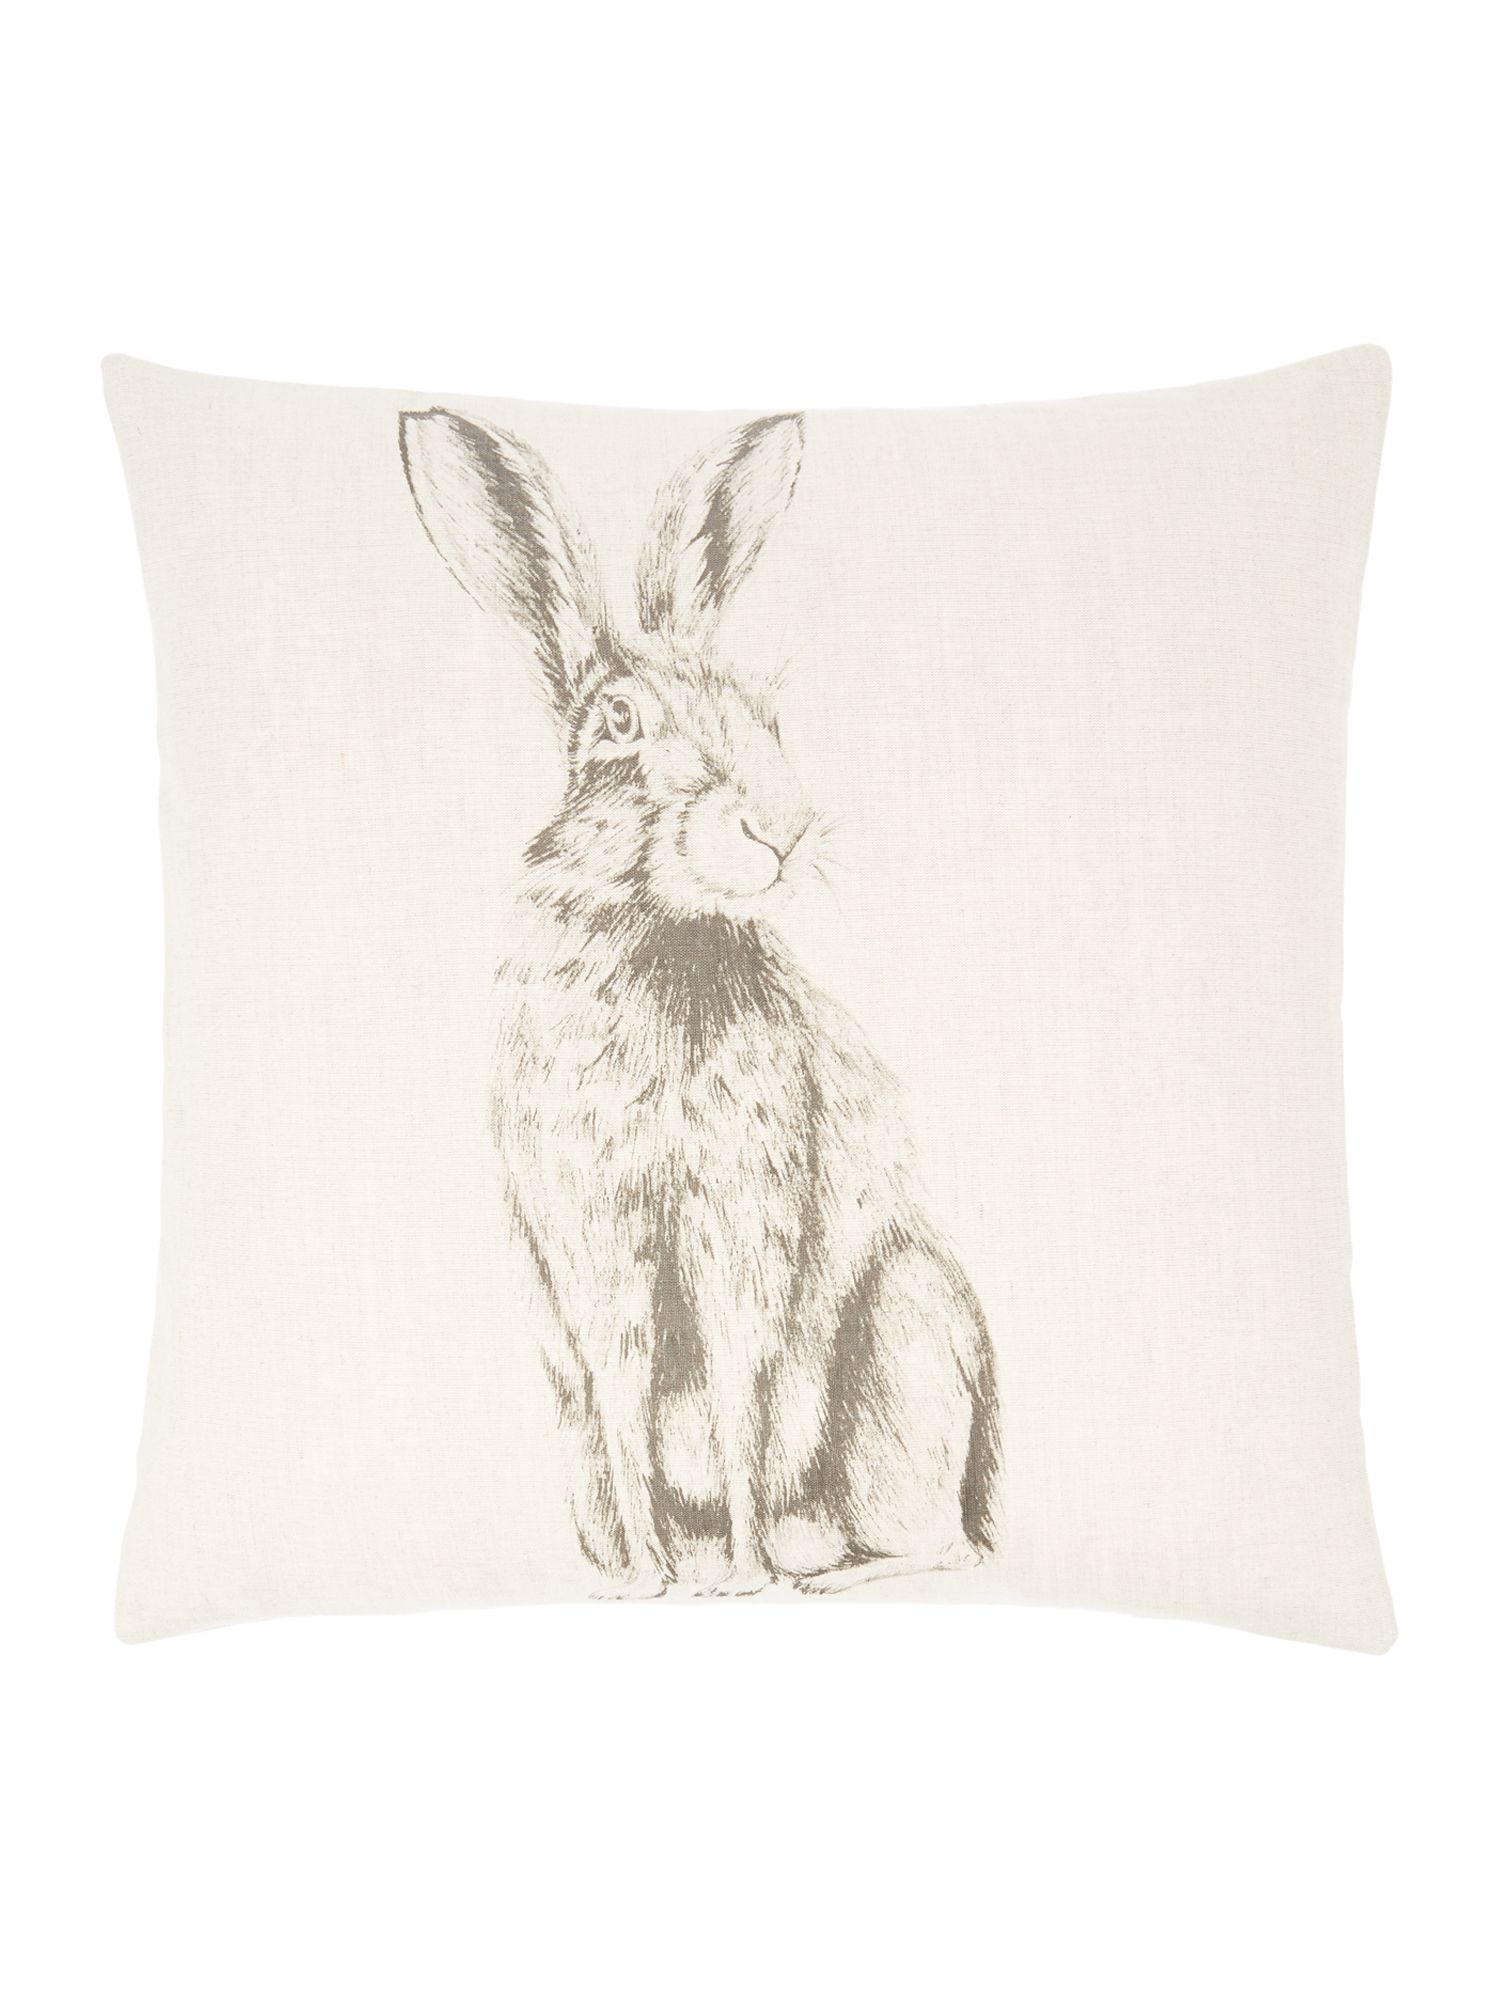 Rabbit pencil drawing print cushion